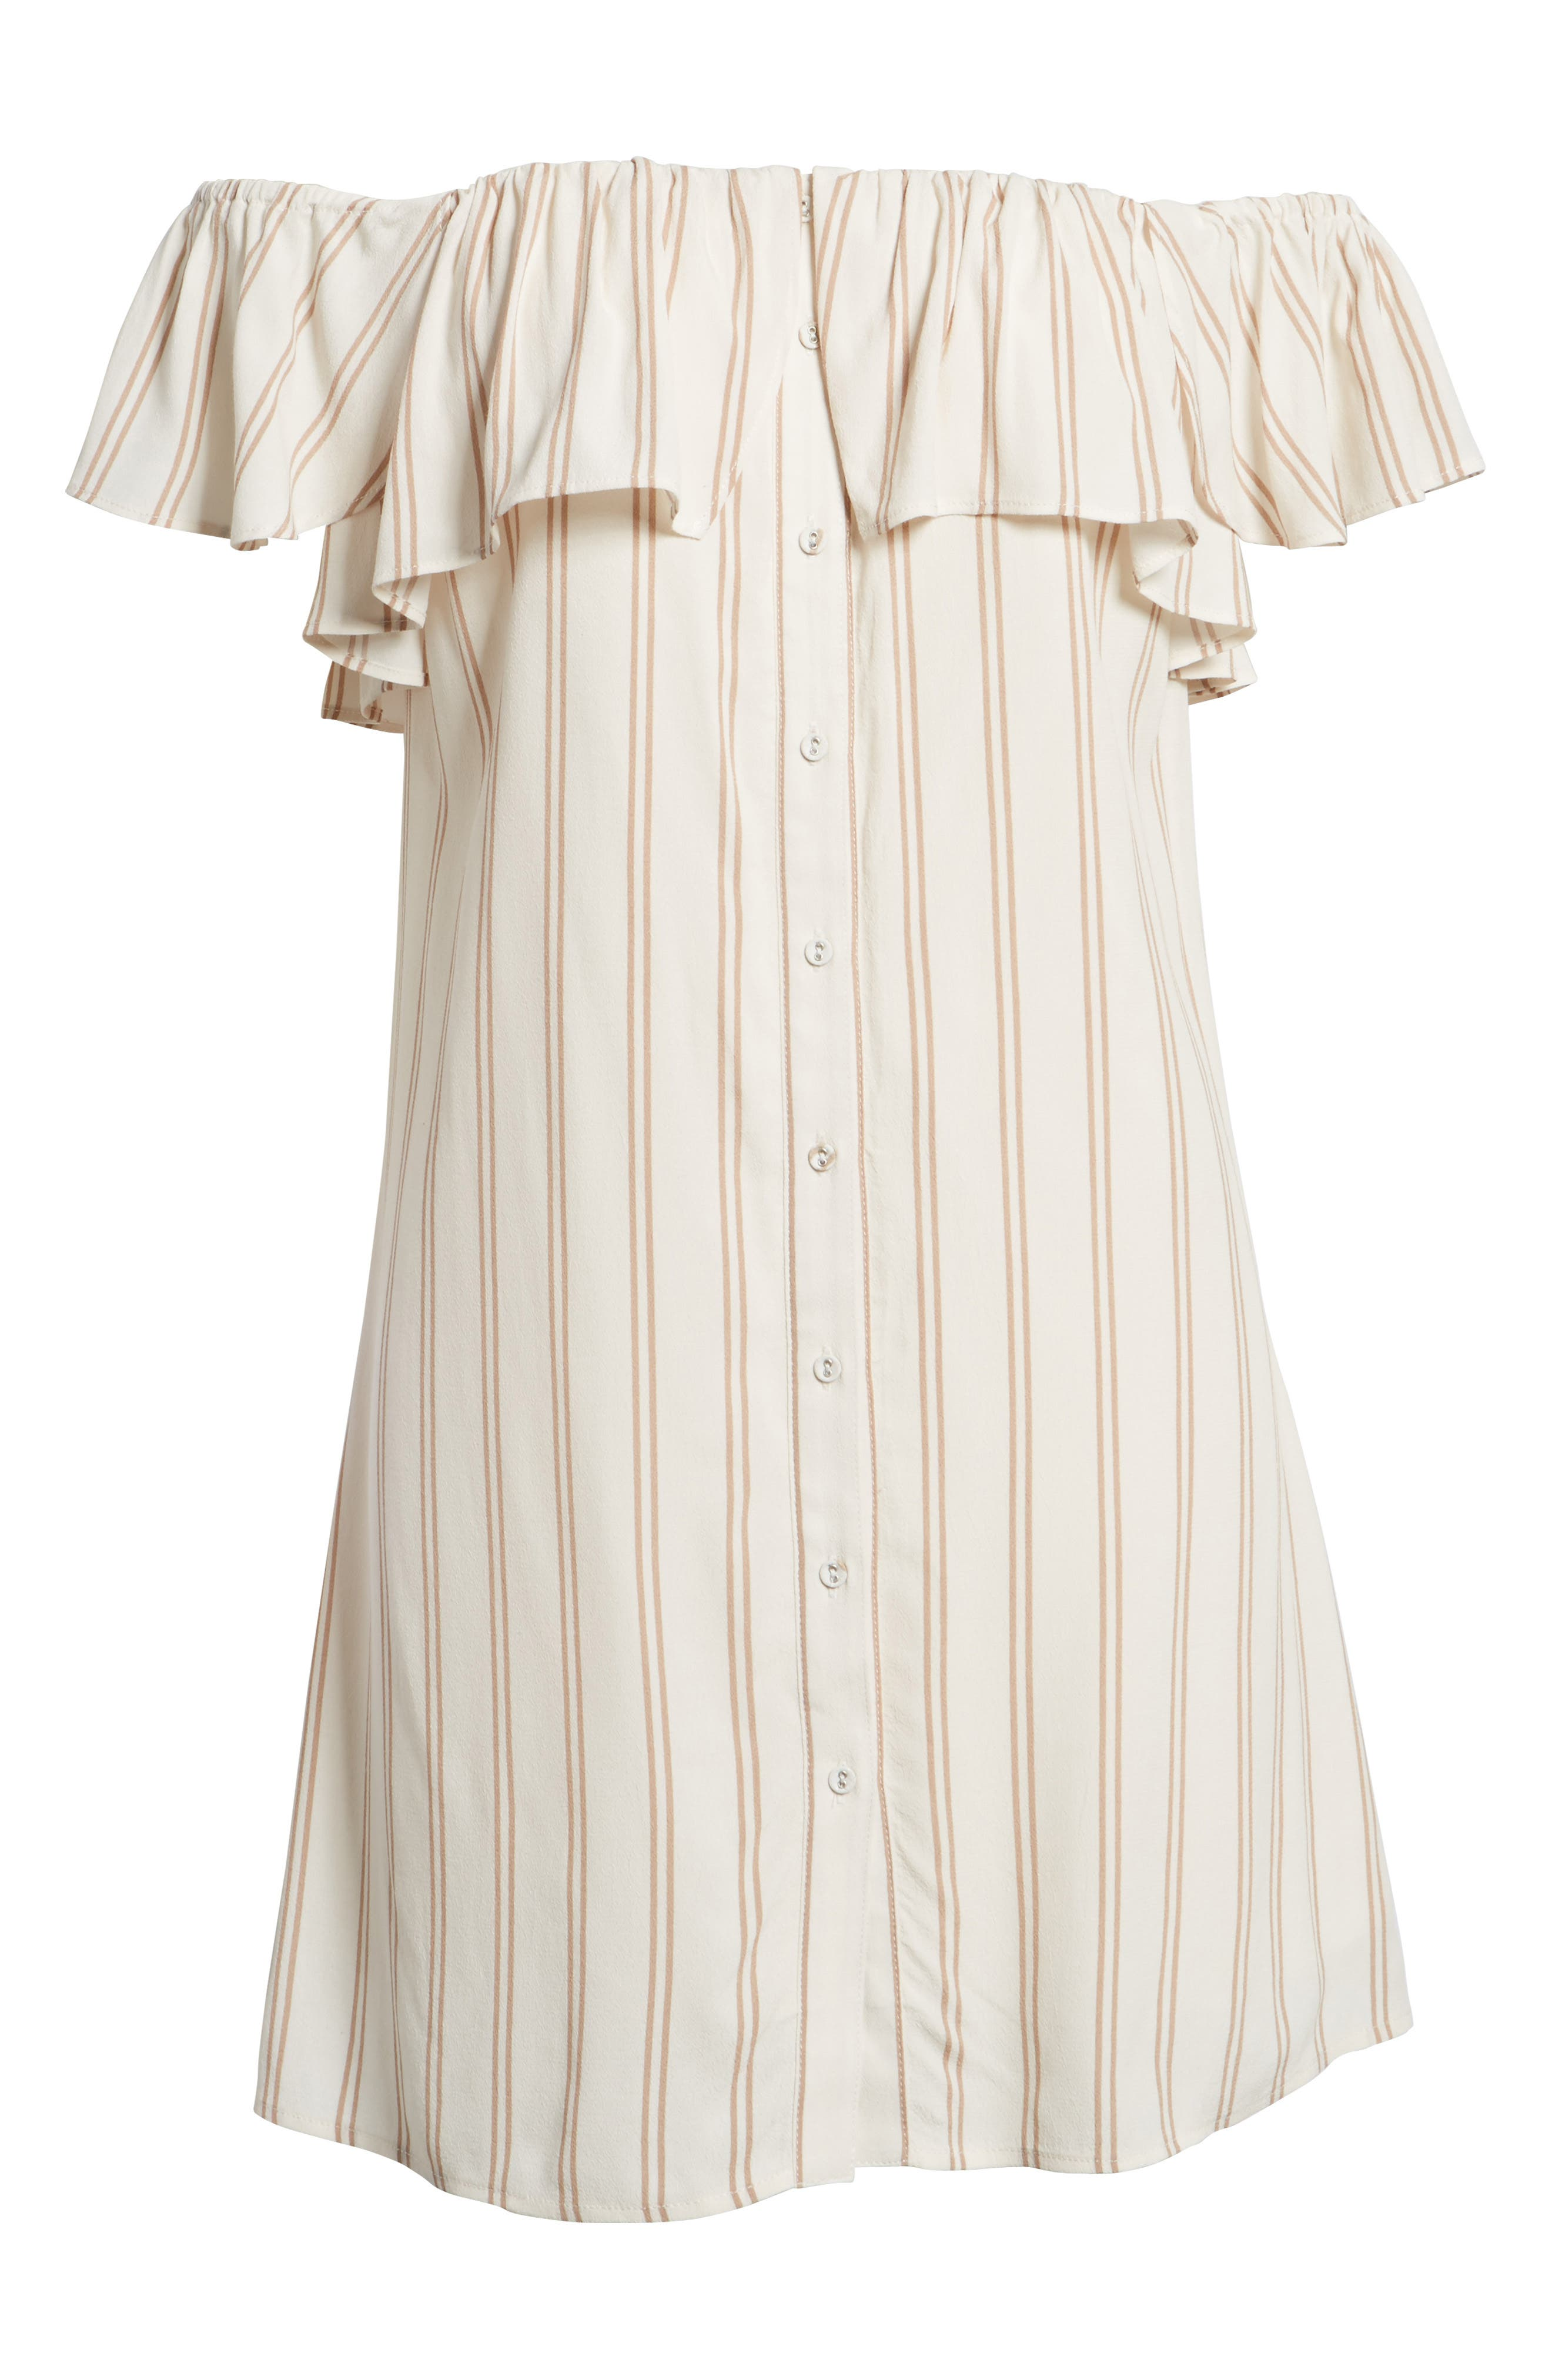 Stripe Off the Shoulder Dress,                             Alternate thumbnail 6, color,                             900